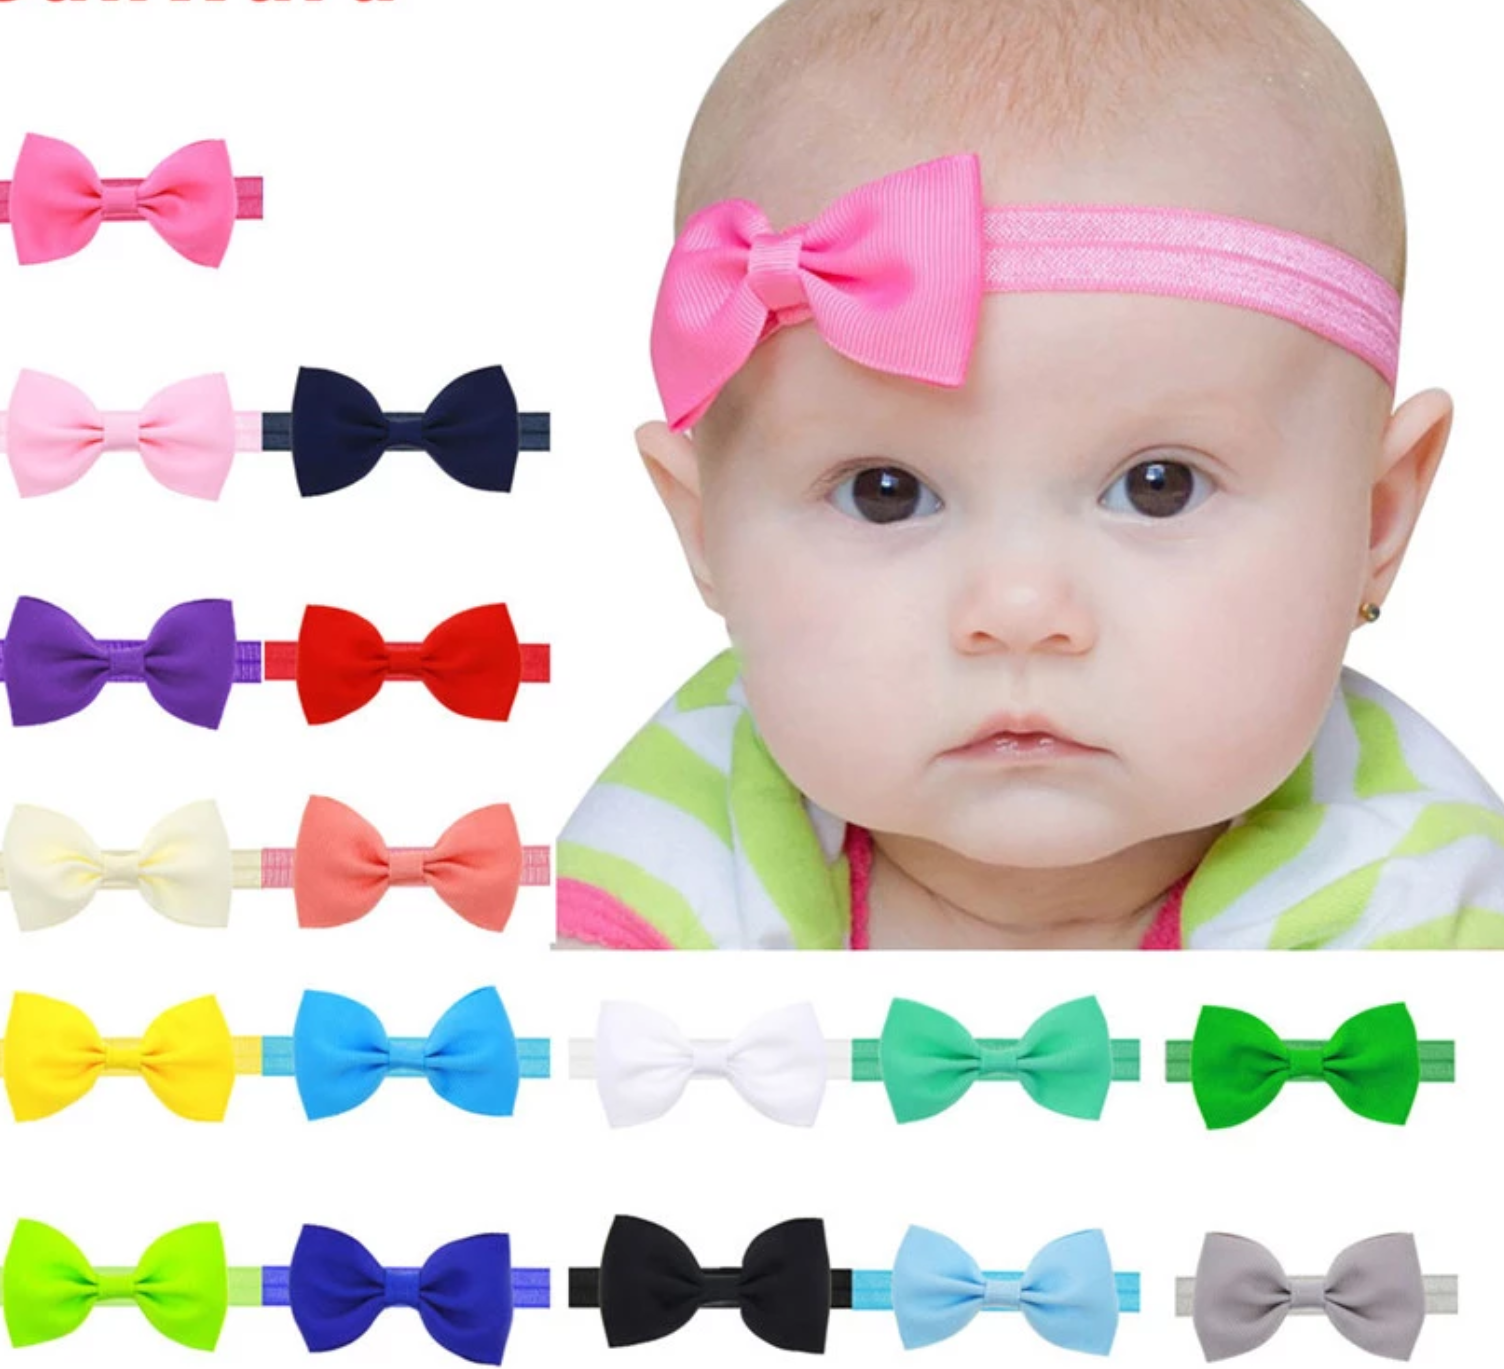 Soft Baby Headbands for delicate heads!    Suaves Moñitos de Nena para su delicada cabecita!